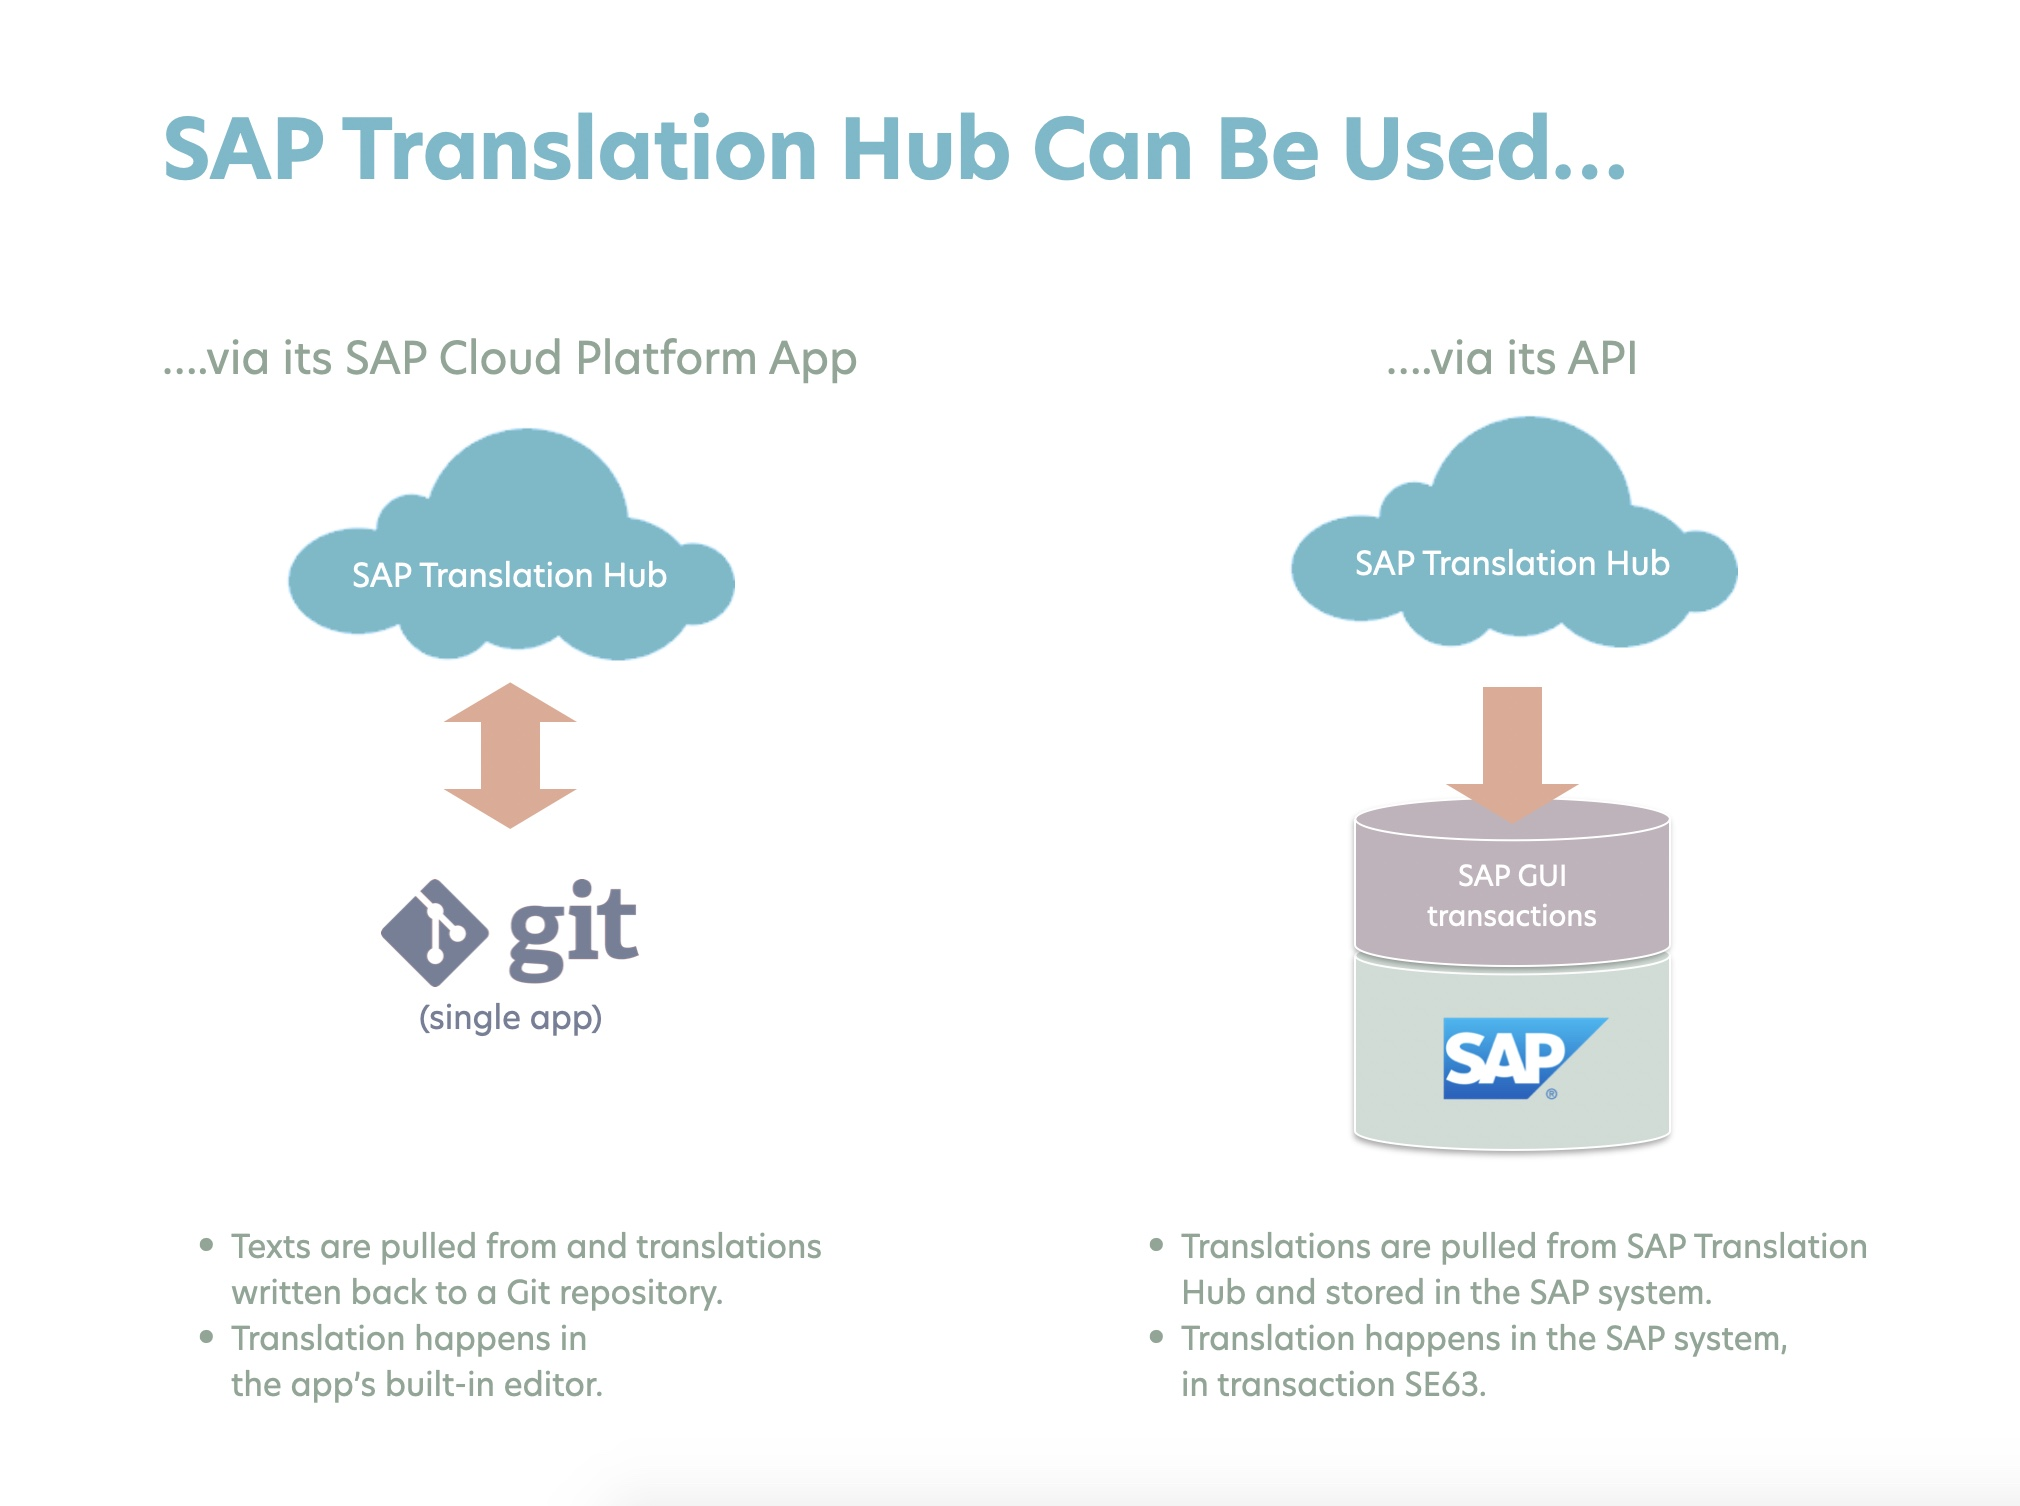 Using SAP Tranlation Hub via the UI or via its API.